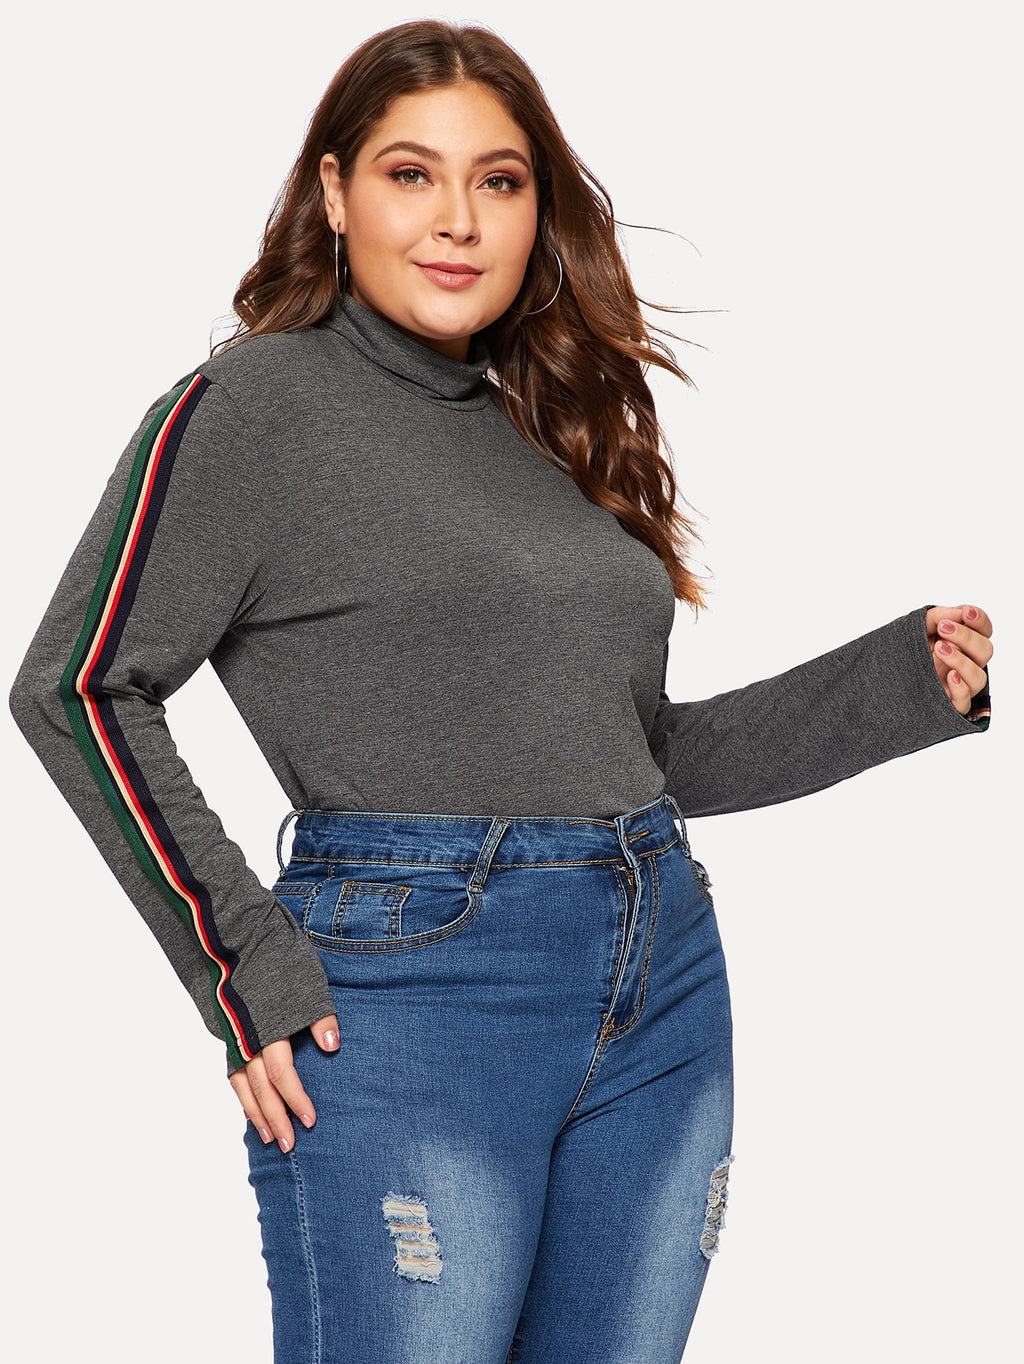 Plus Size Tops - Contrast Tape Side Heathered Knit Tee